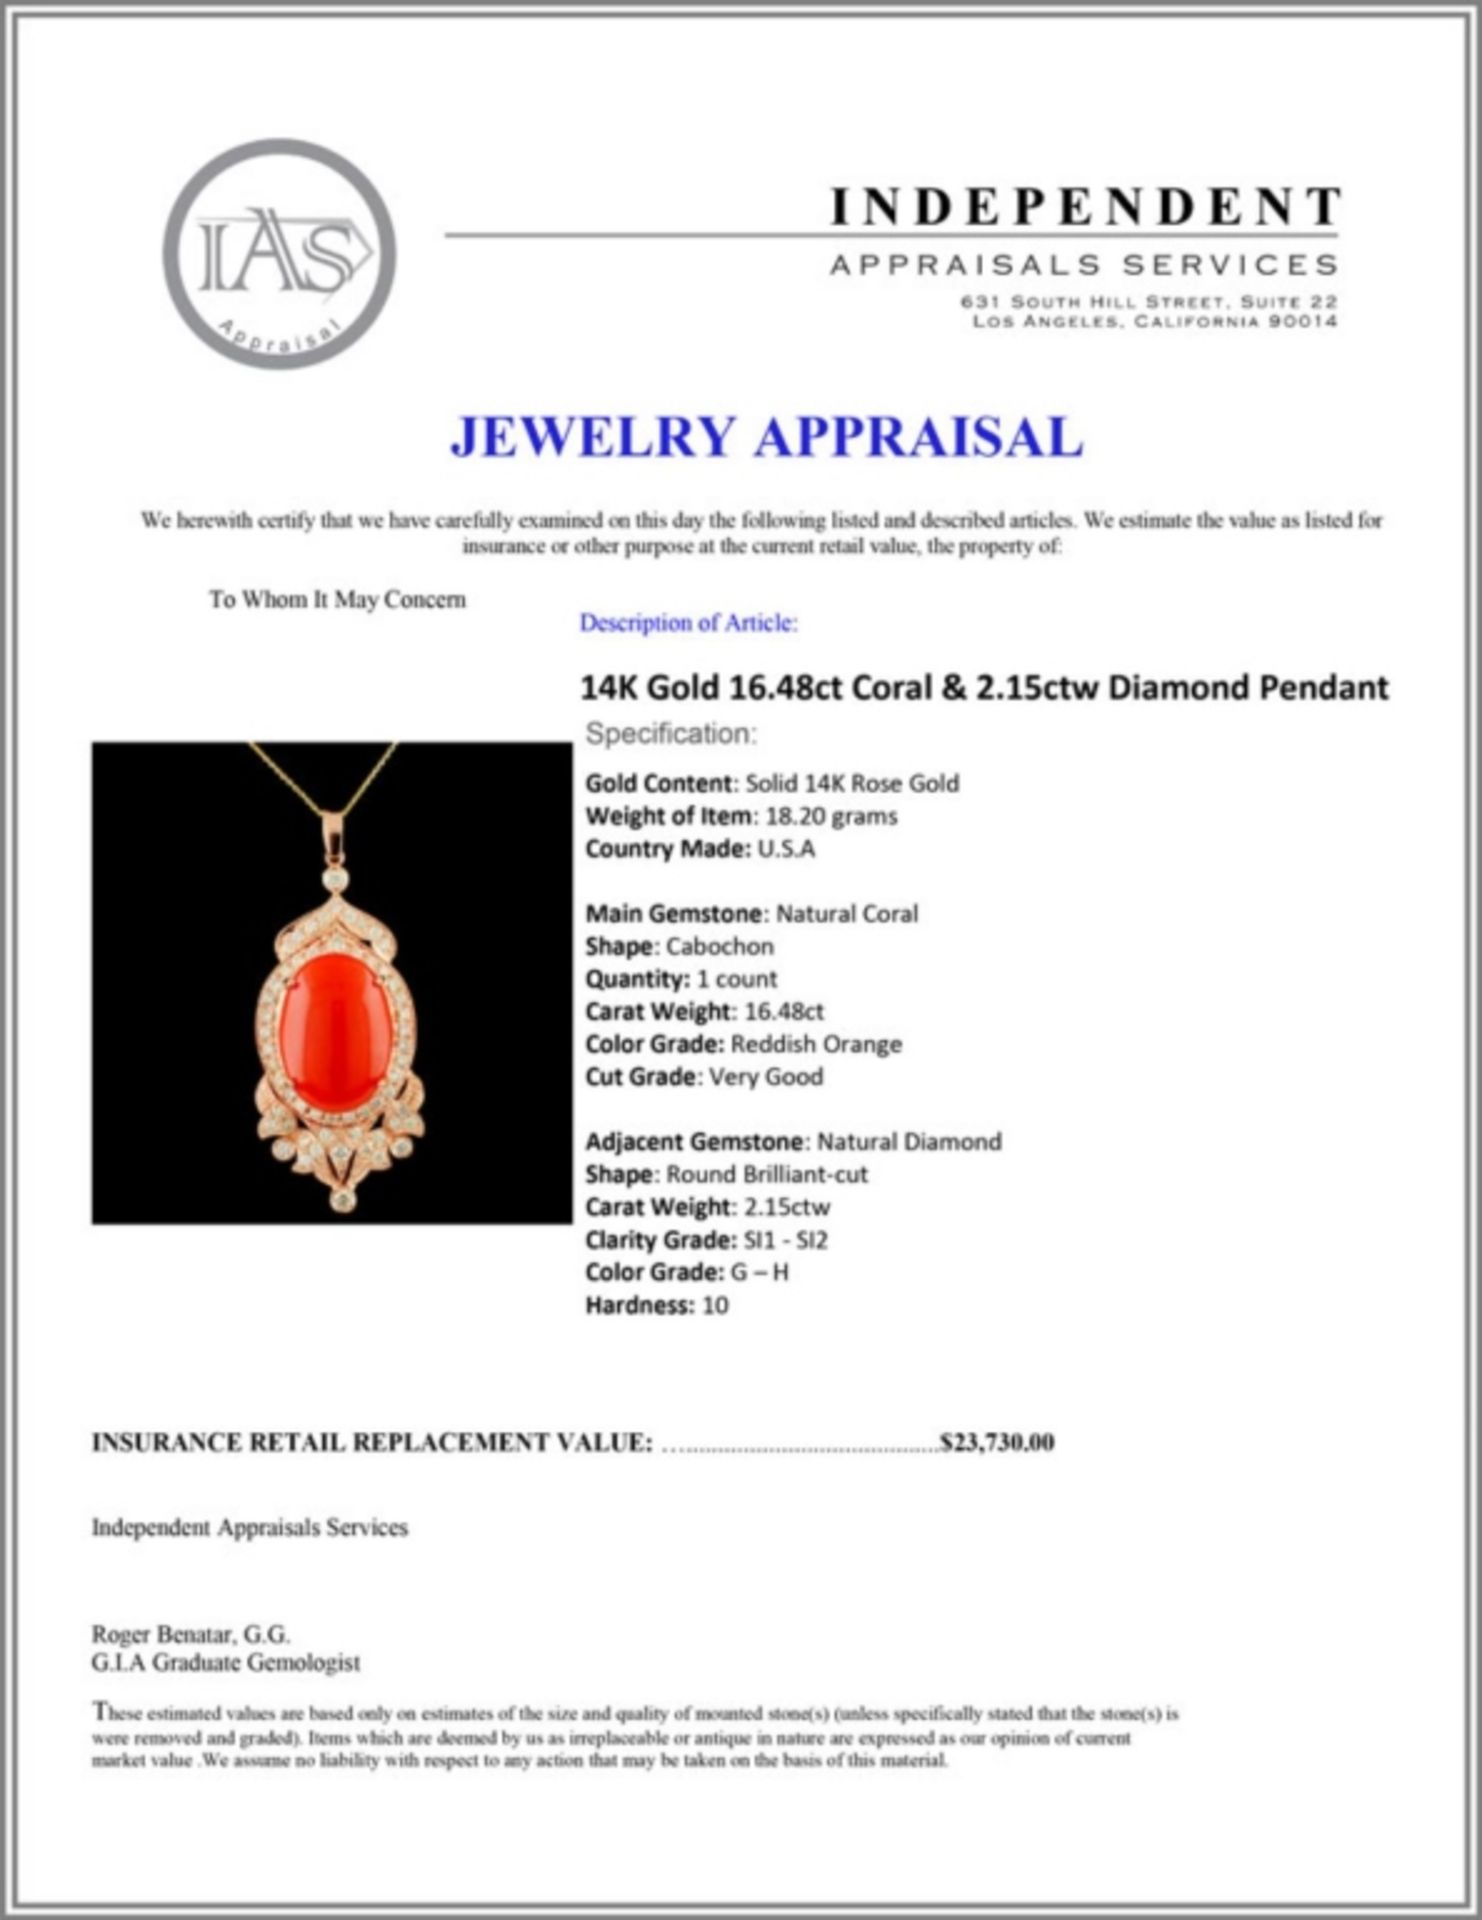 14K Gold 16.48ct Coral & 2.15ctw Diamond Pendant - Image 4 of 4